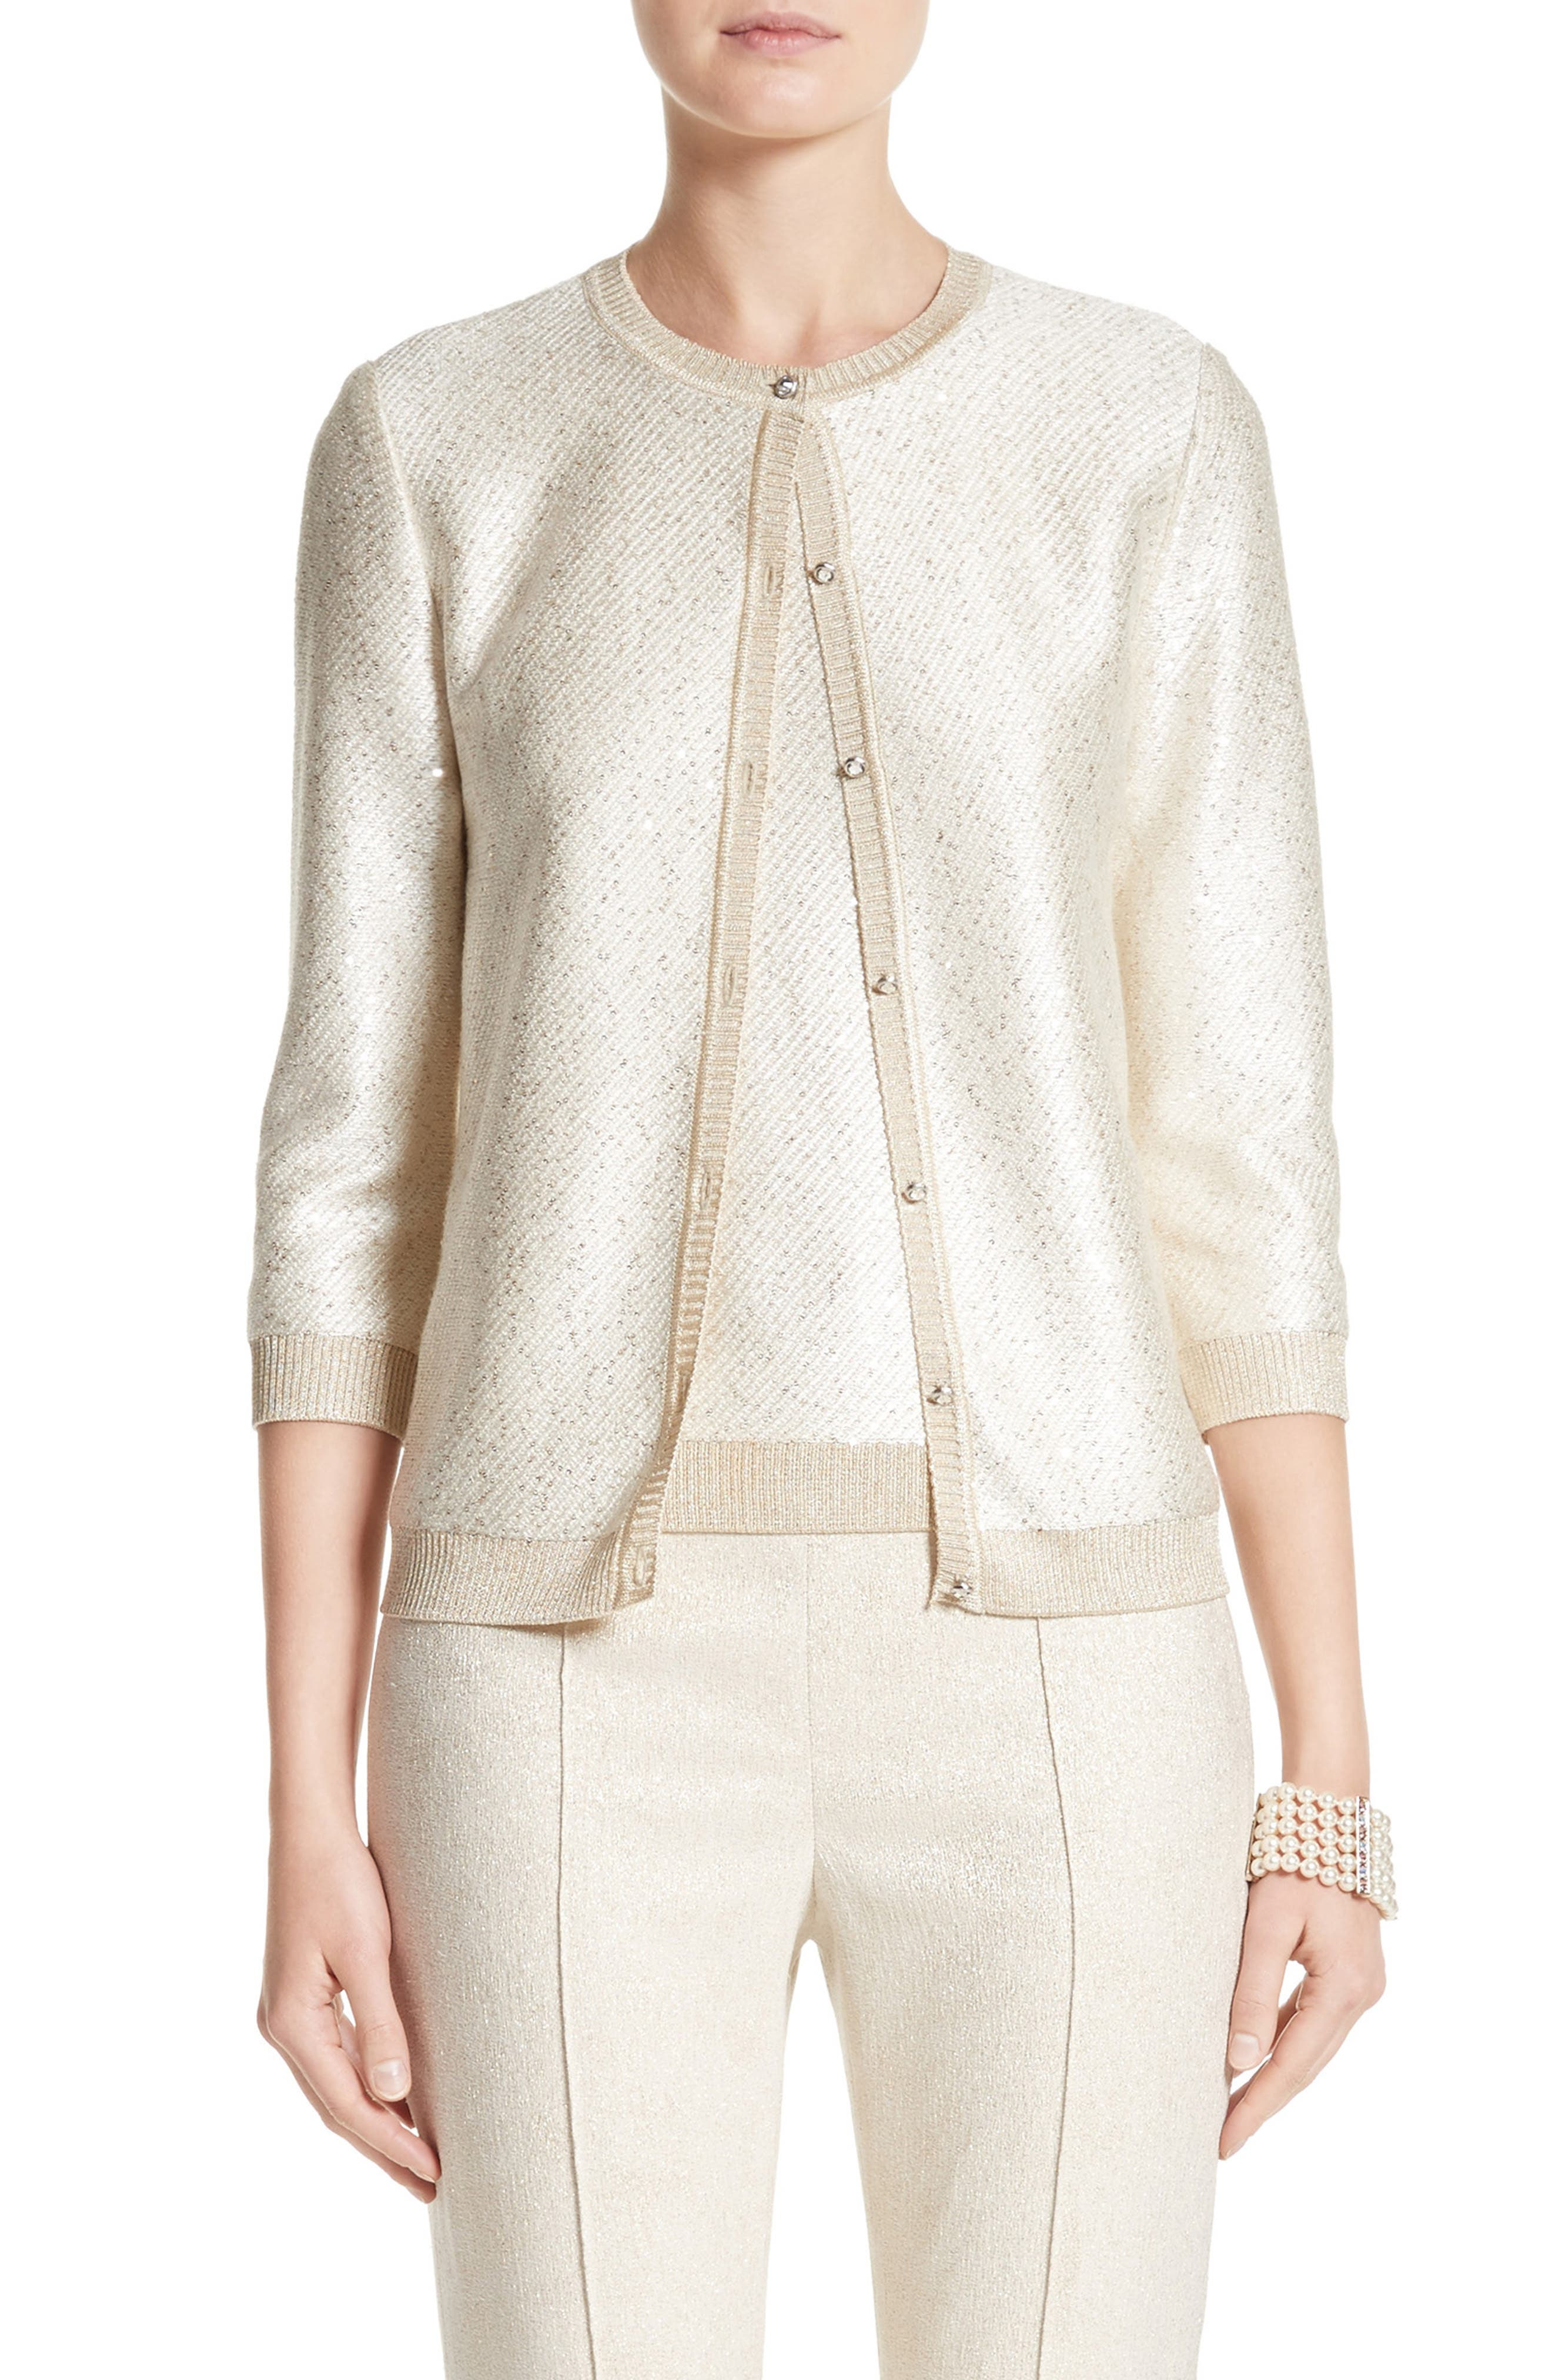 St. John Collection Vivaan Sequin Knit Cardigan